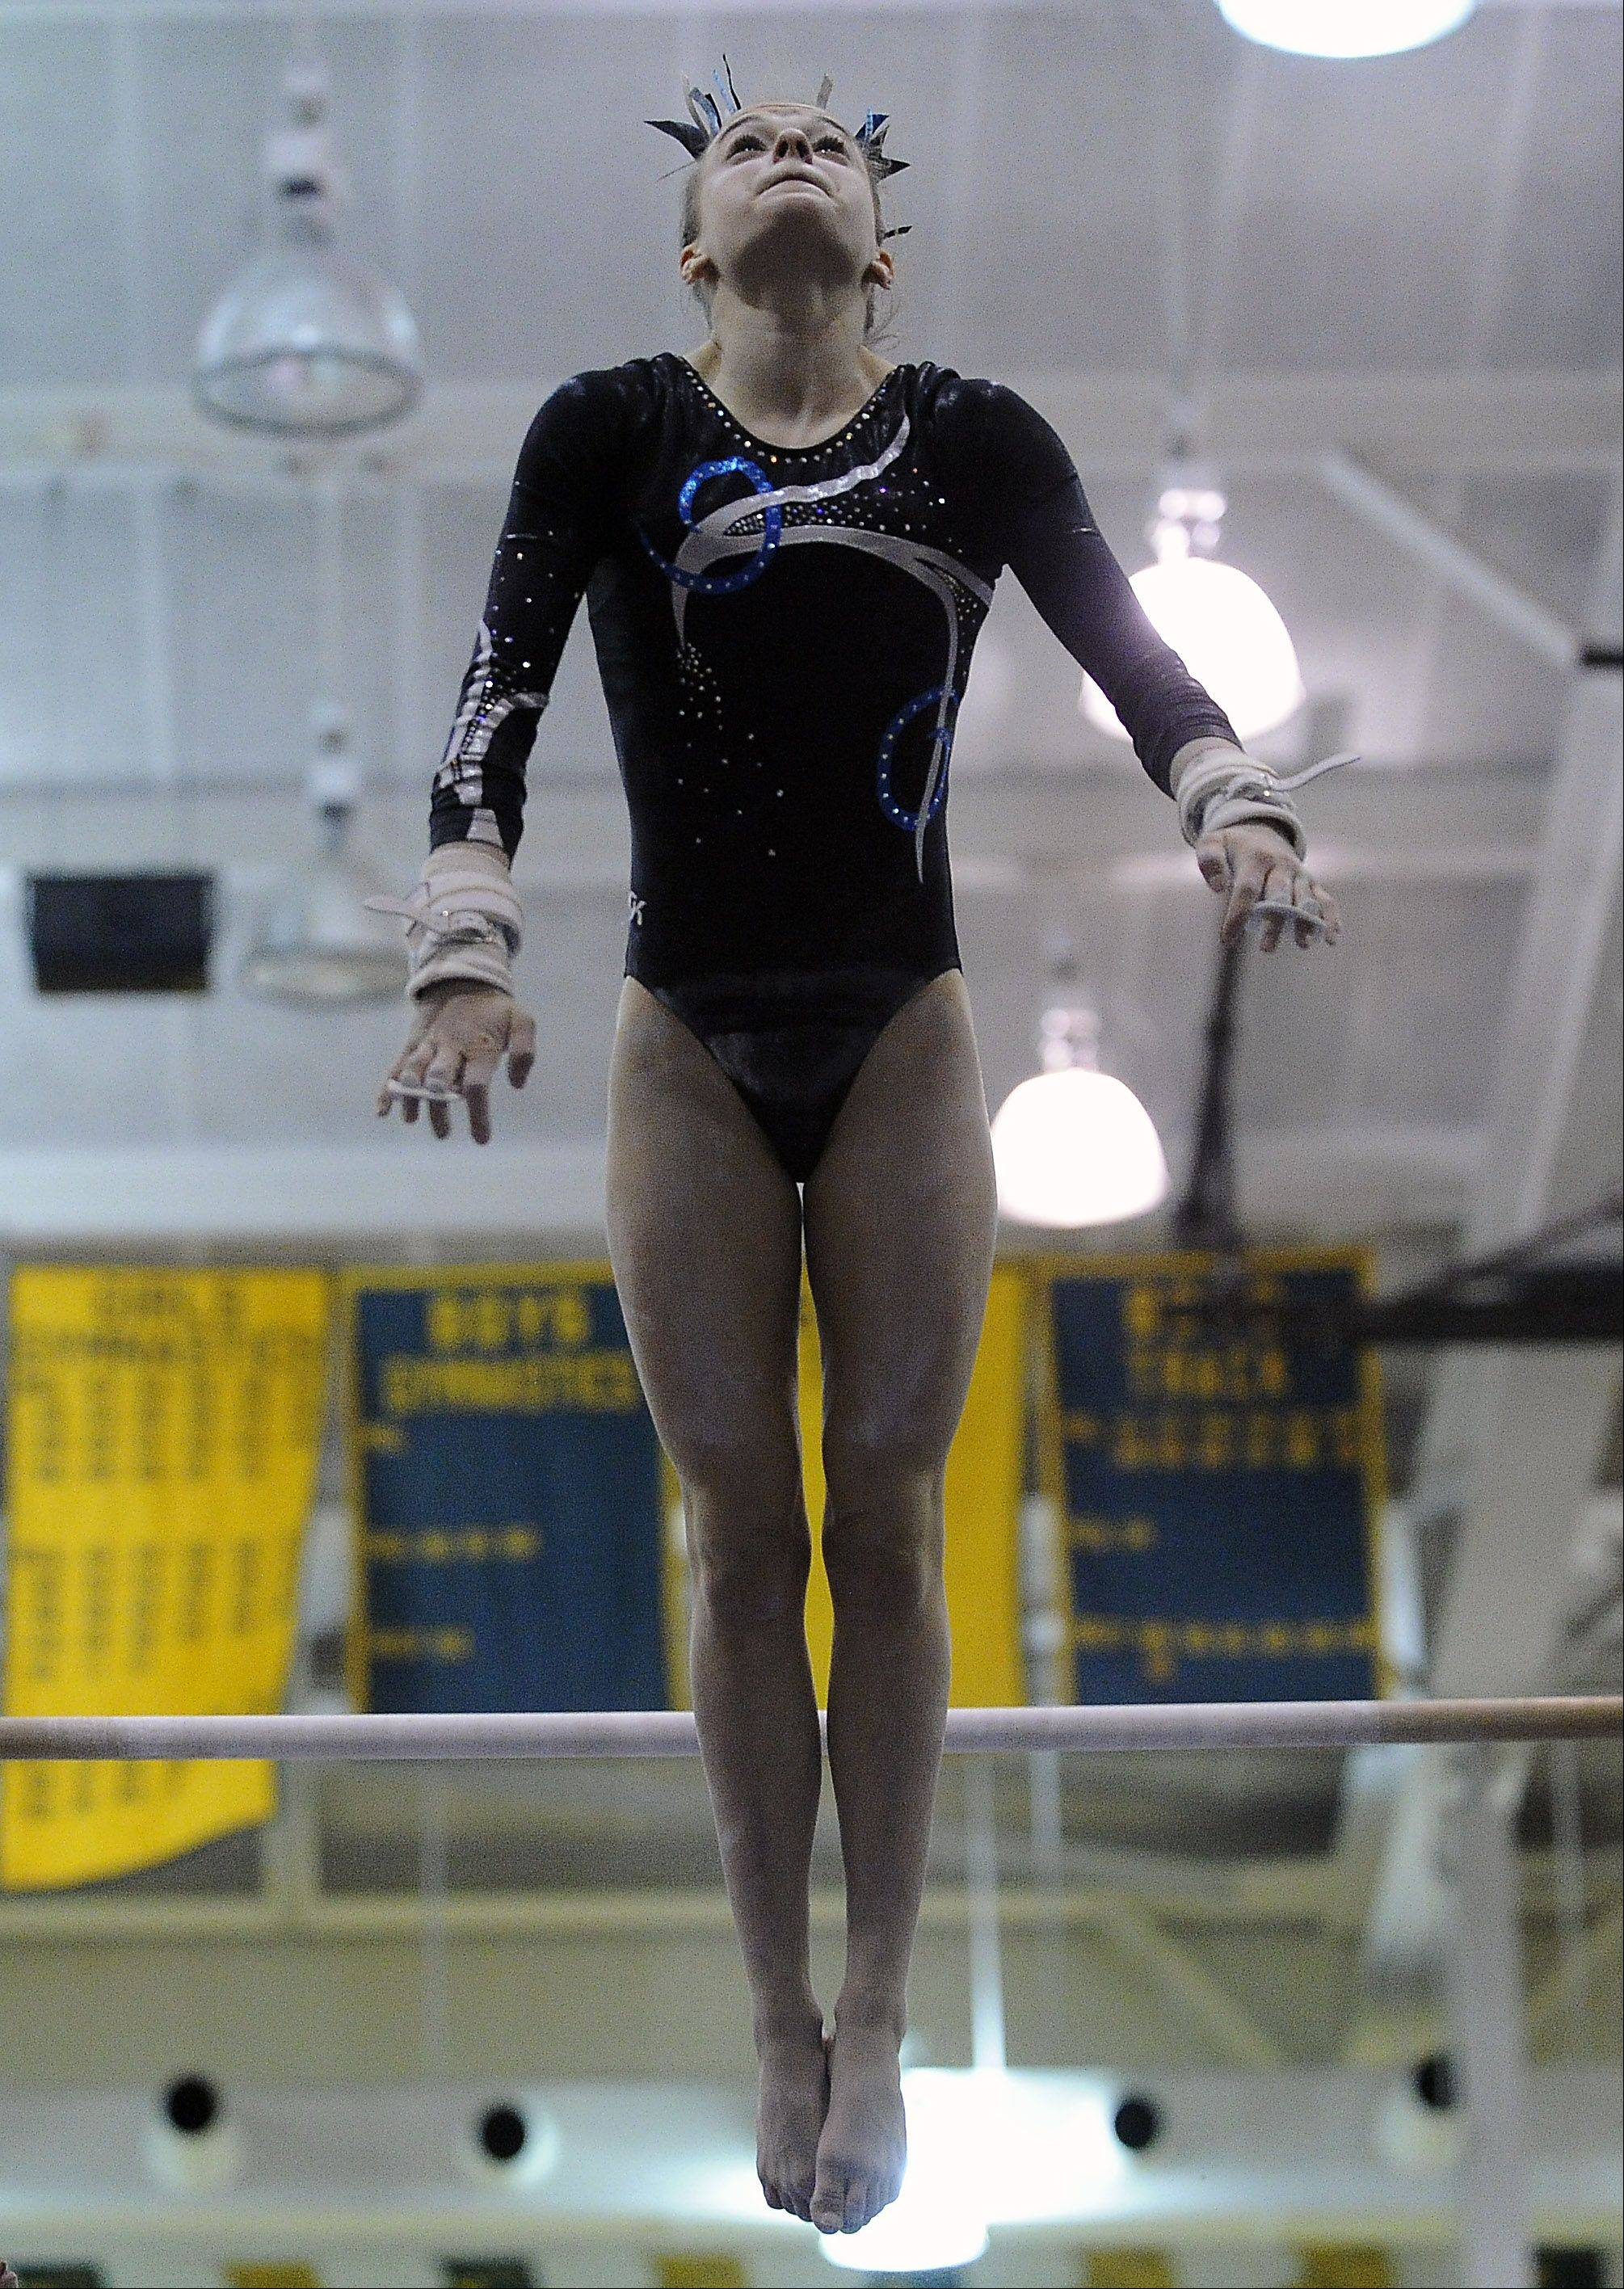 Prospect's Maddie Larock on the uneven parallel bars during sectional action Monday at Fremd.